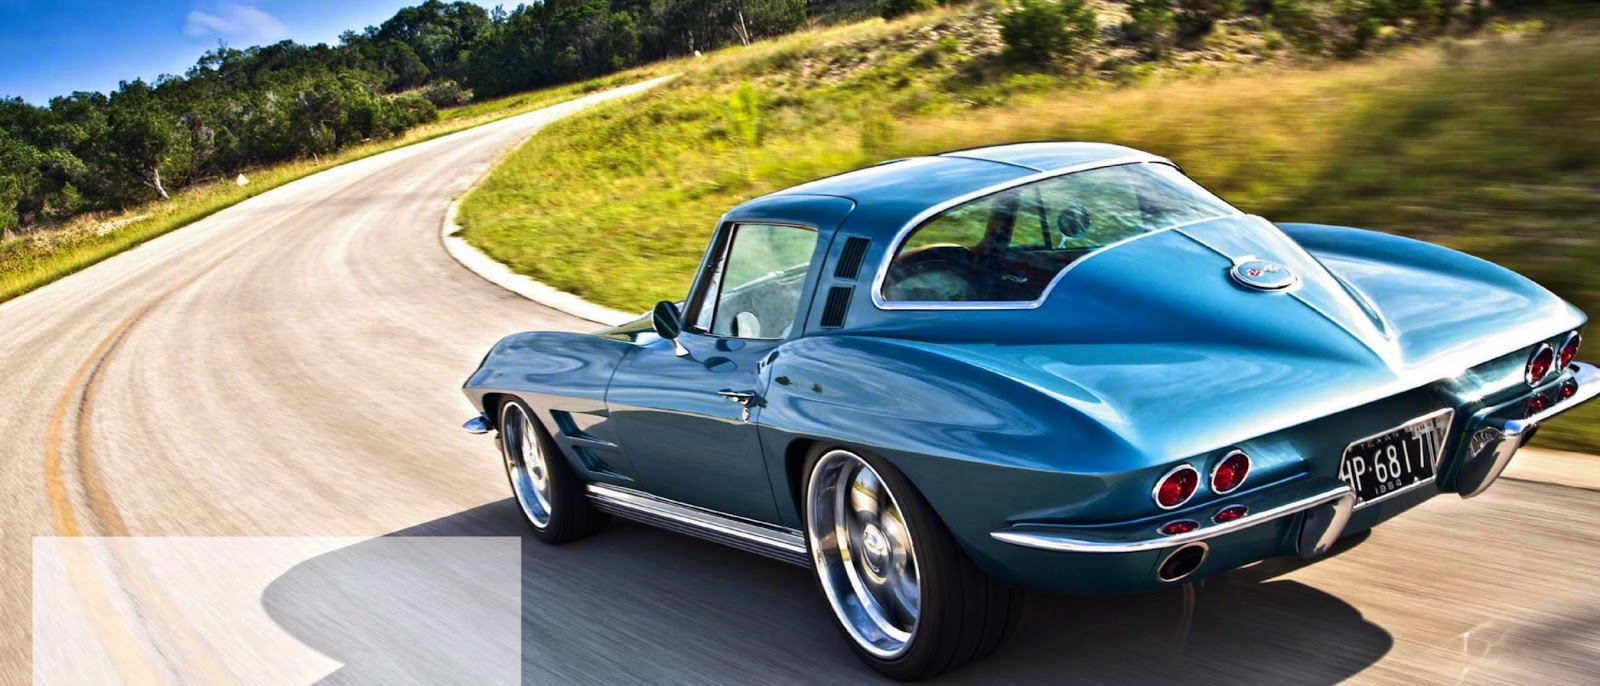 Corvette 1964 chevrolet corvette : 1964 CHEVROLET CORVETTE - Departure to a new world of AutoCar,Car ...